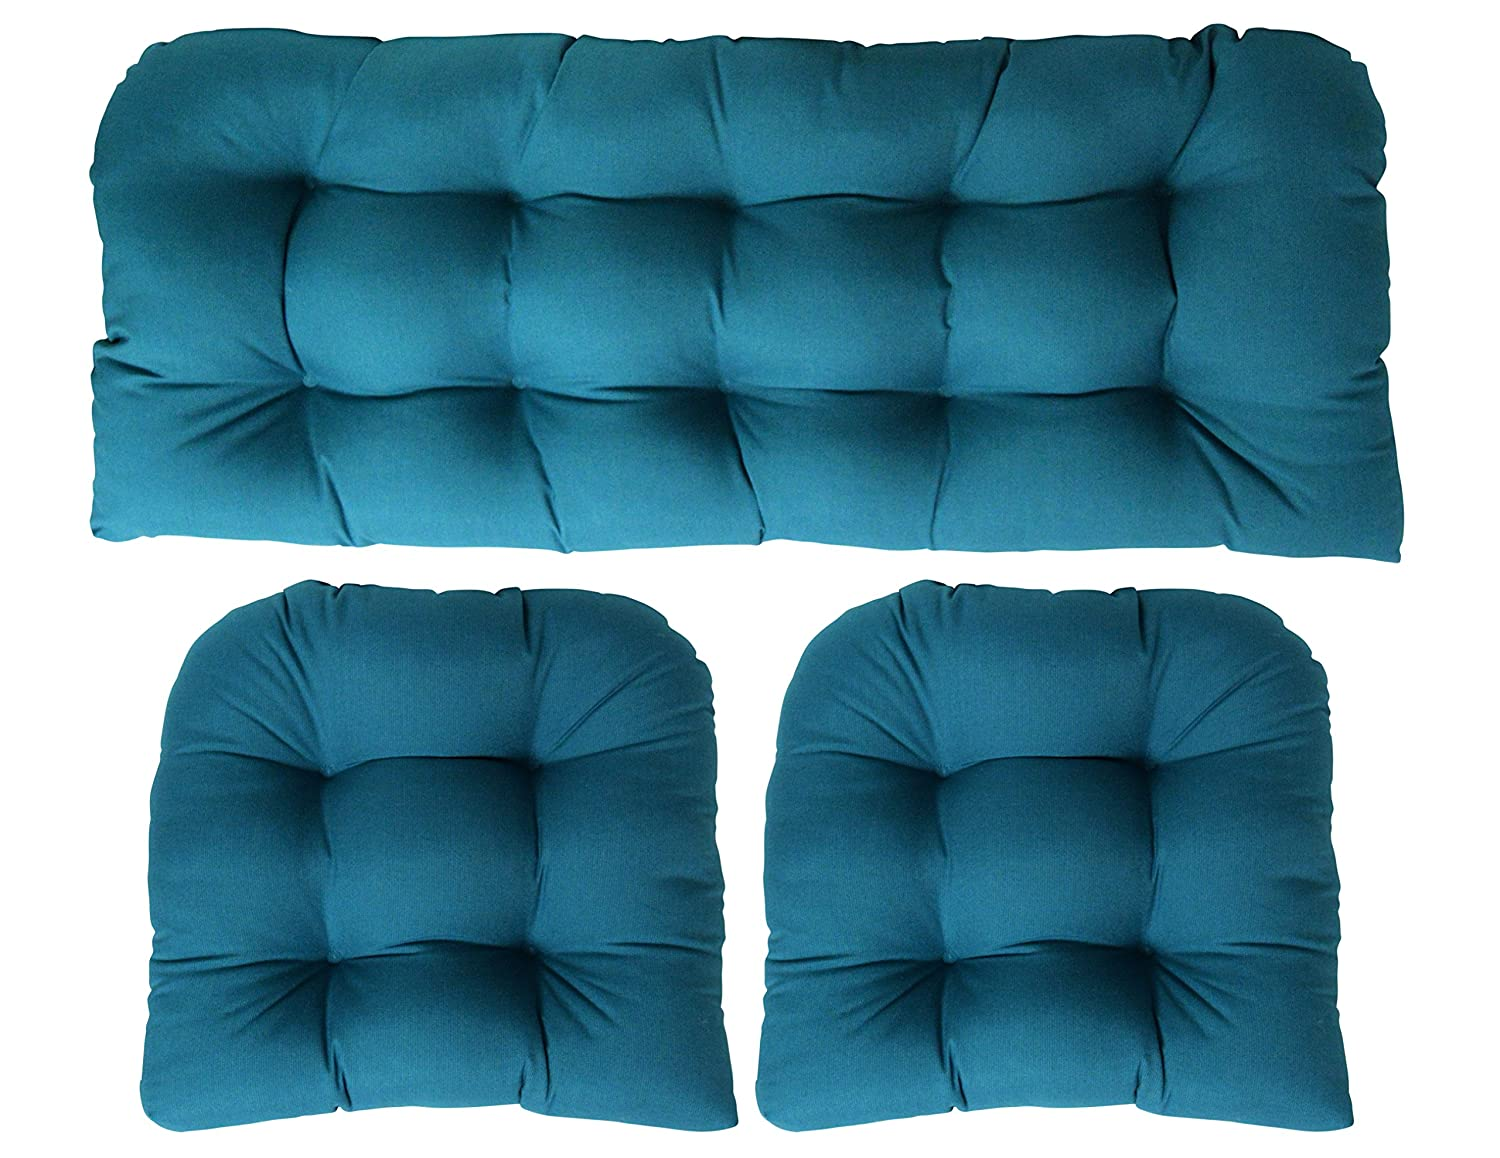 RSH Decor 3 Piece Wicker Cushion Set – Indoor Outdoor Wicker Loveseat Settee 2 Matching Chair Cushions – Sunbrella Spectrum Peacock Teal Blue 1132